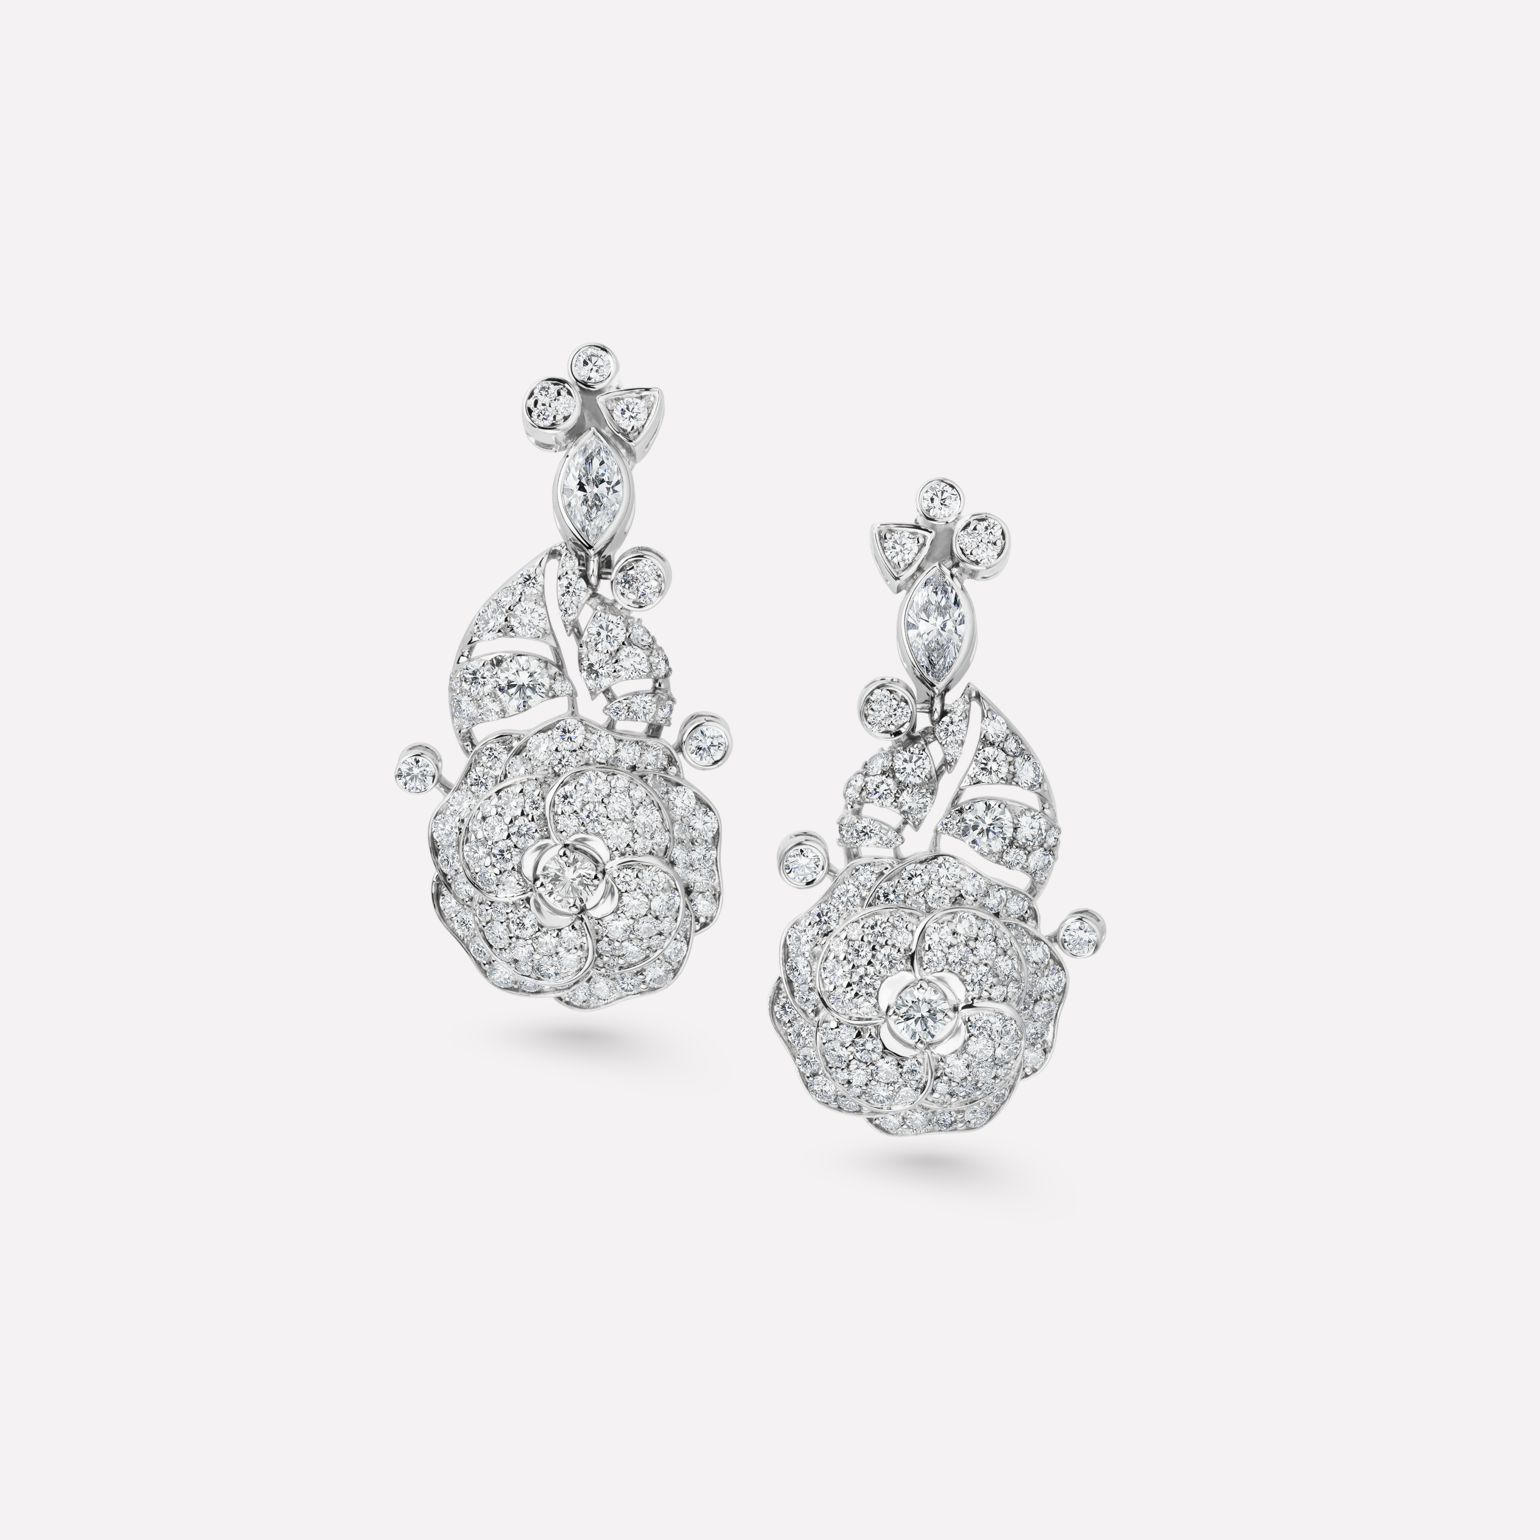 Camélia Earrings Pétales de Camélia earrings in 18K white gold, diamonds and central diamonds